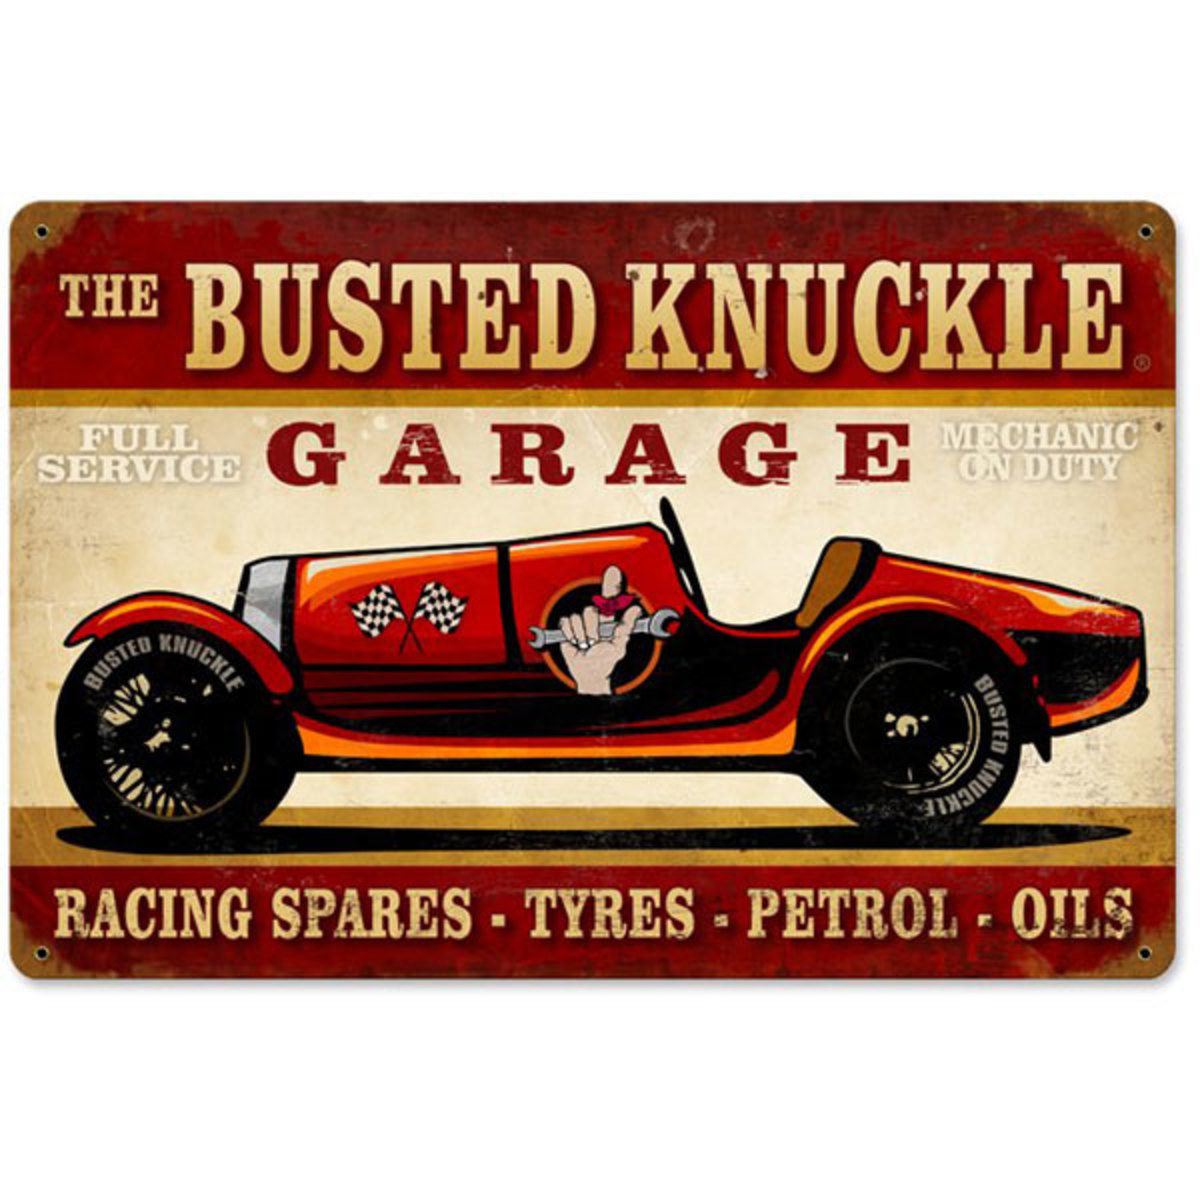 The Busted Knuckle Garage porcelain racing sign - classic automobilia